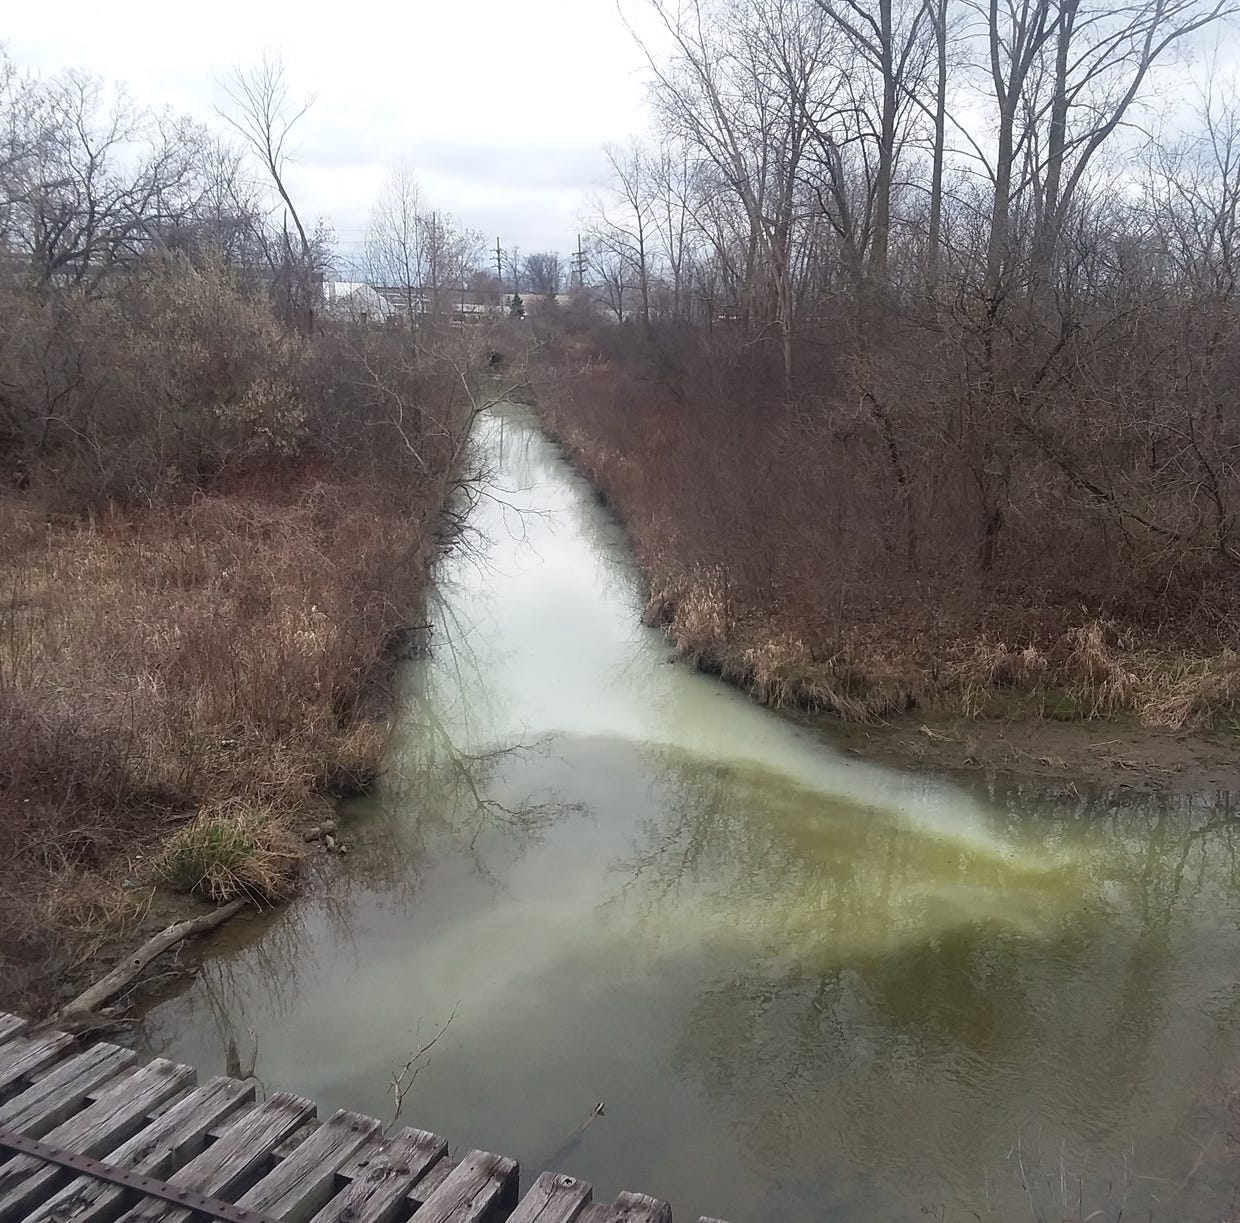 Strange, milky substance found in Sterling Heights drain